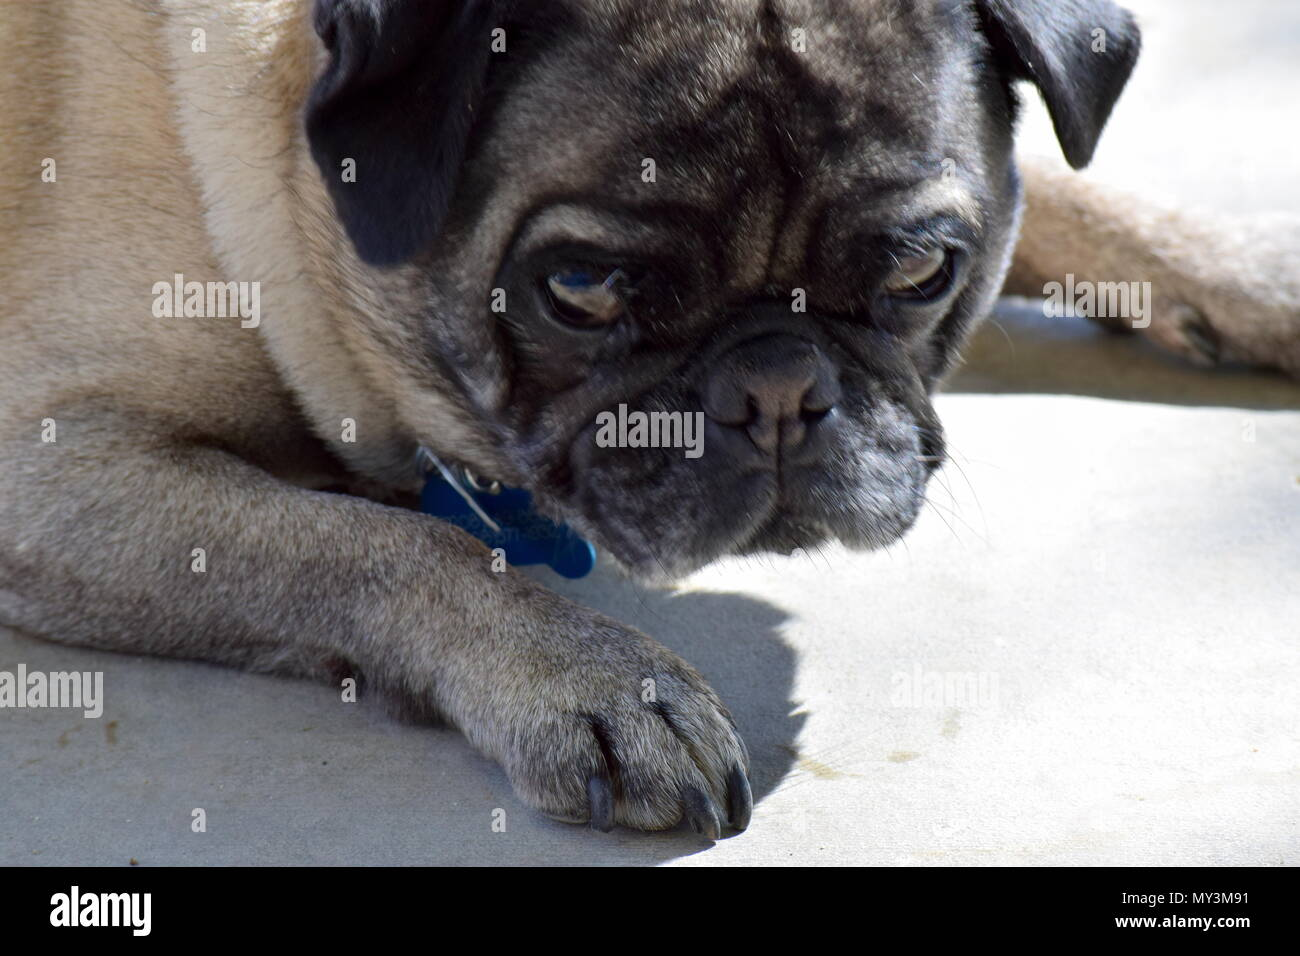 Pug with attitude - Stock Image